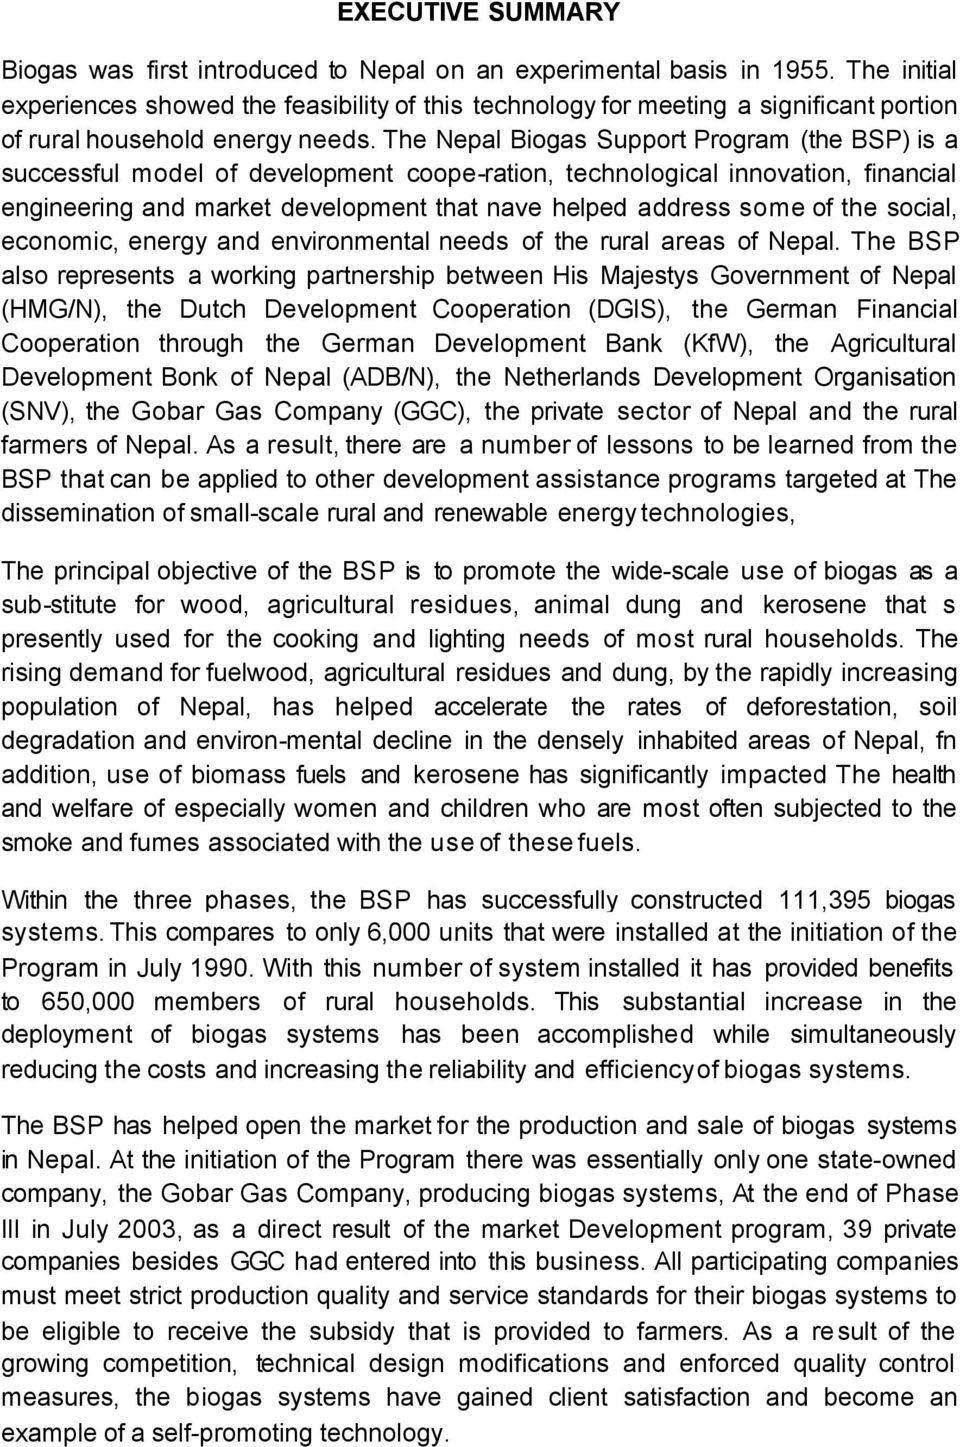 The Nepal Biogas Support Program (the BSP) is a successful model of development coope-ration, technological innovation, financial engineering and market development that nave helped address some of